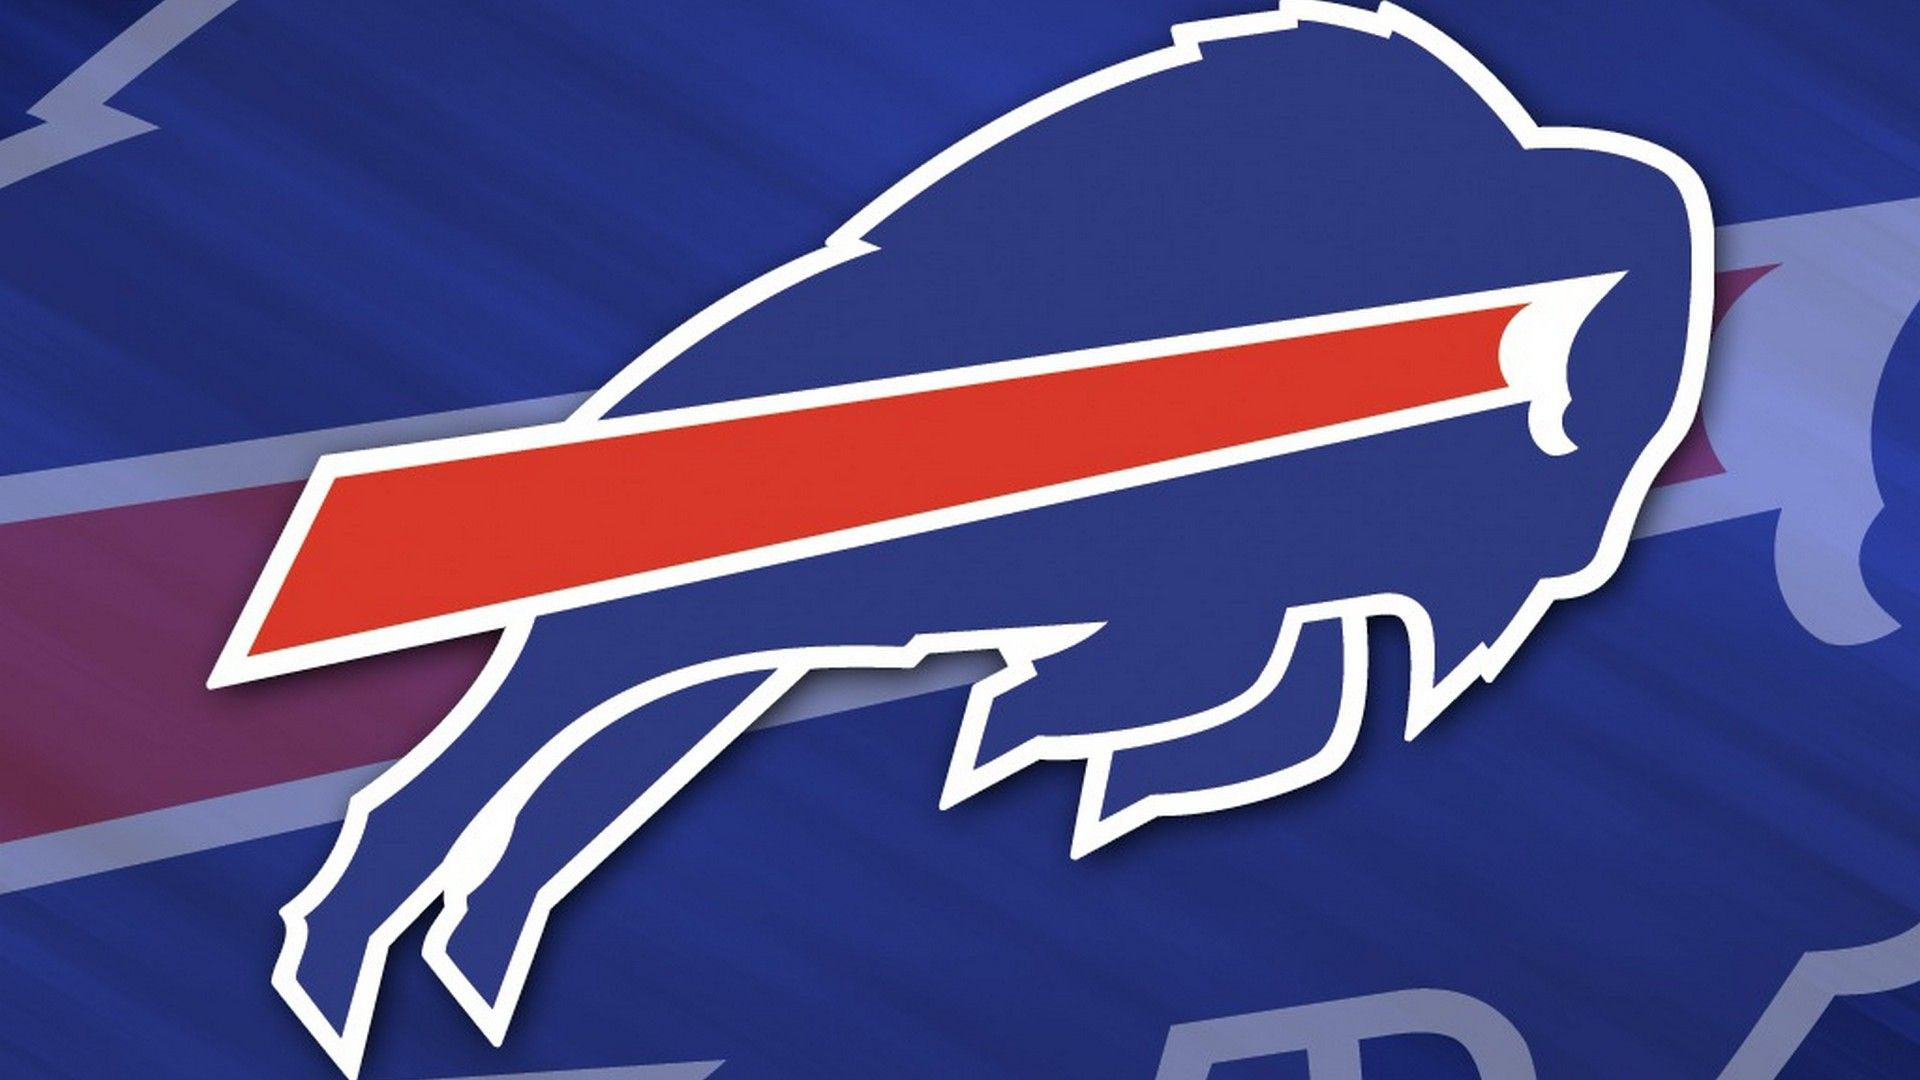 Buffalo Bills Desktop Wallpaper Wallpapers Football wallpaper 1920x1080